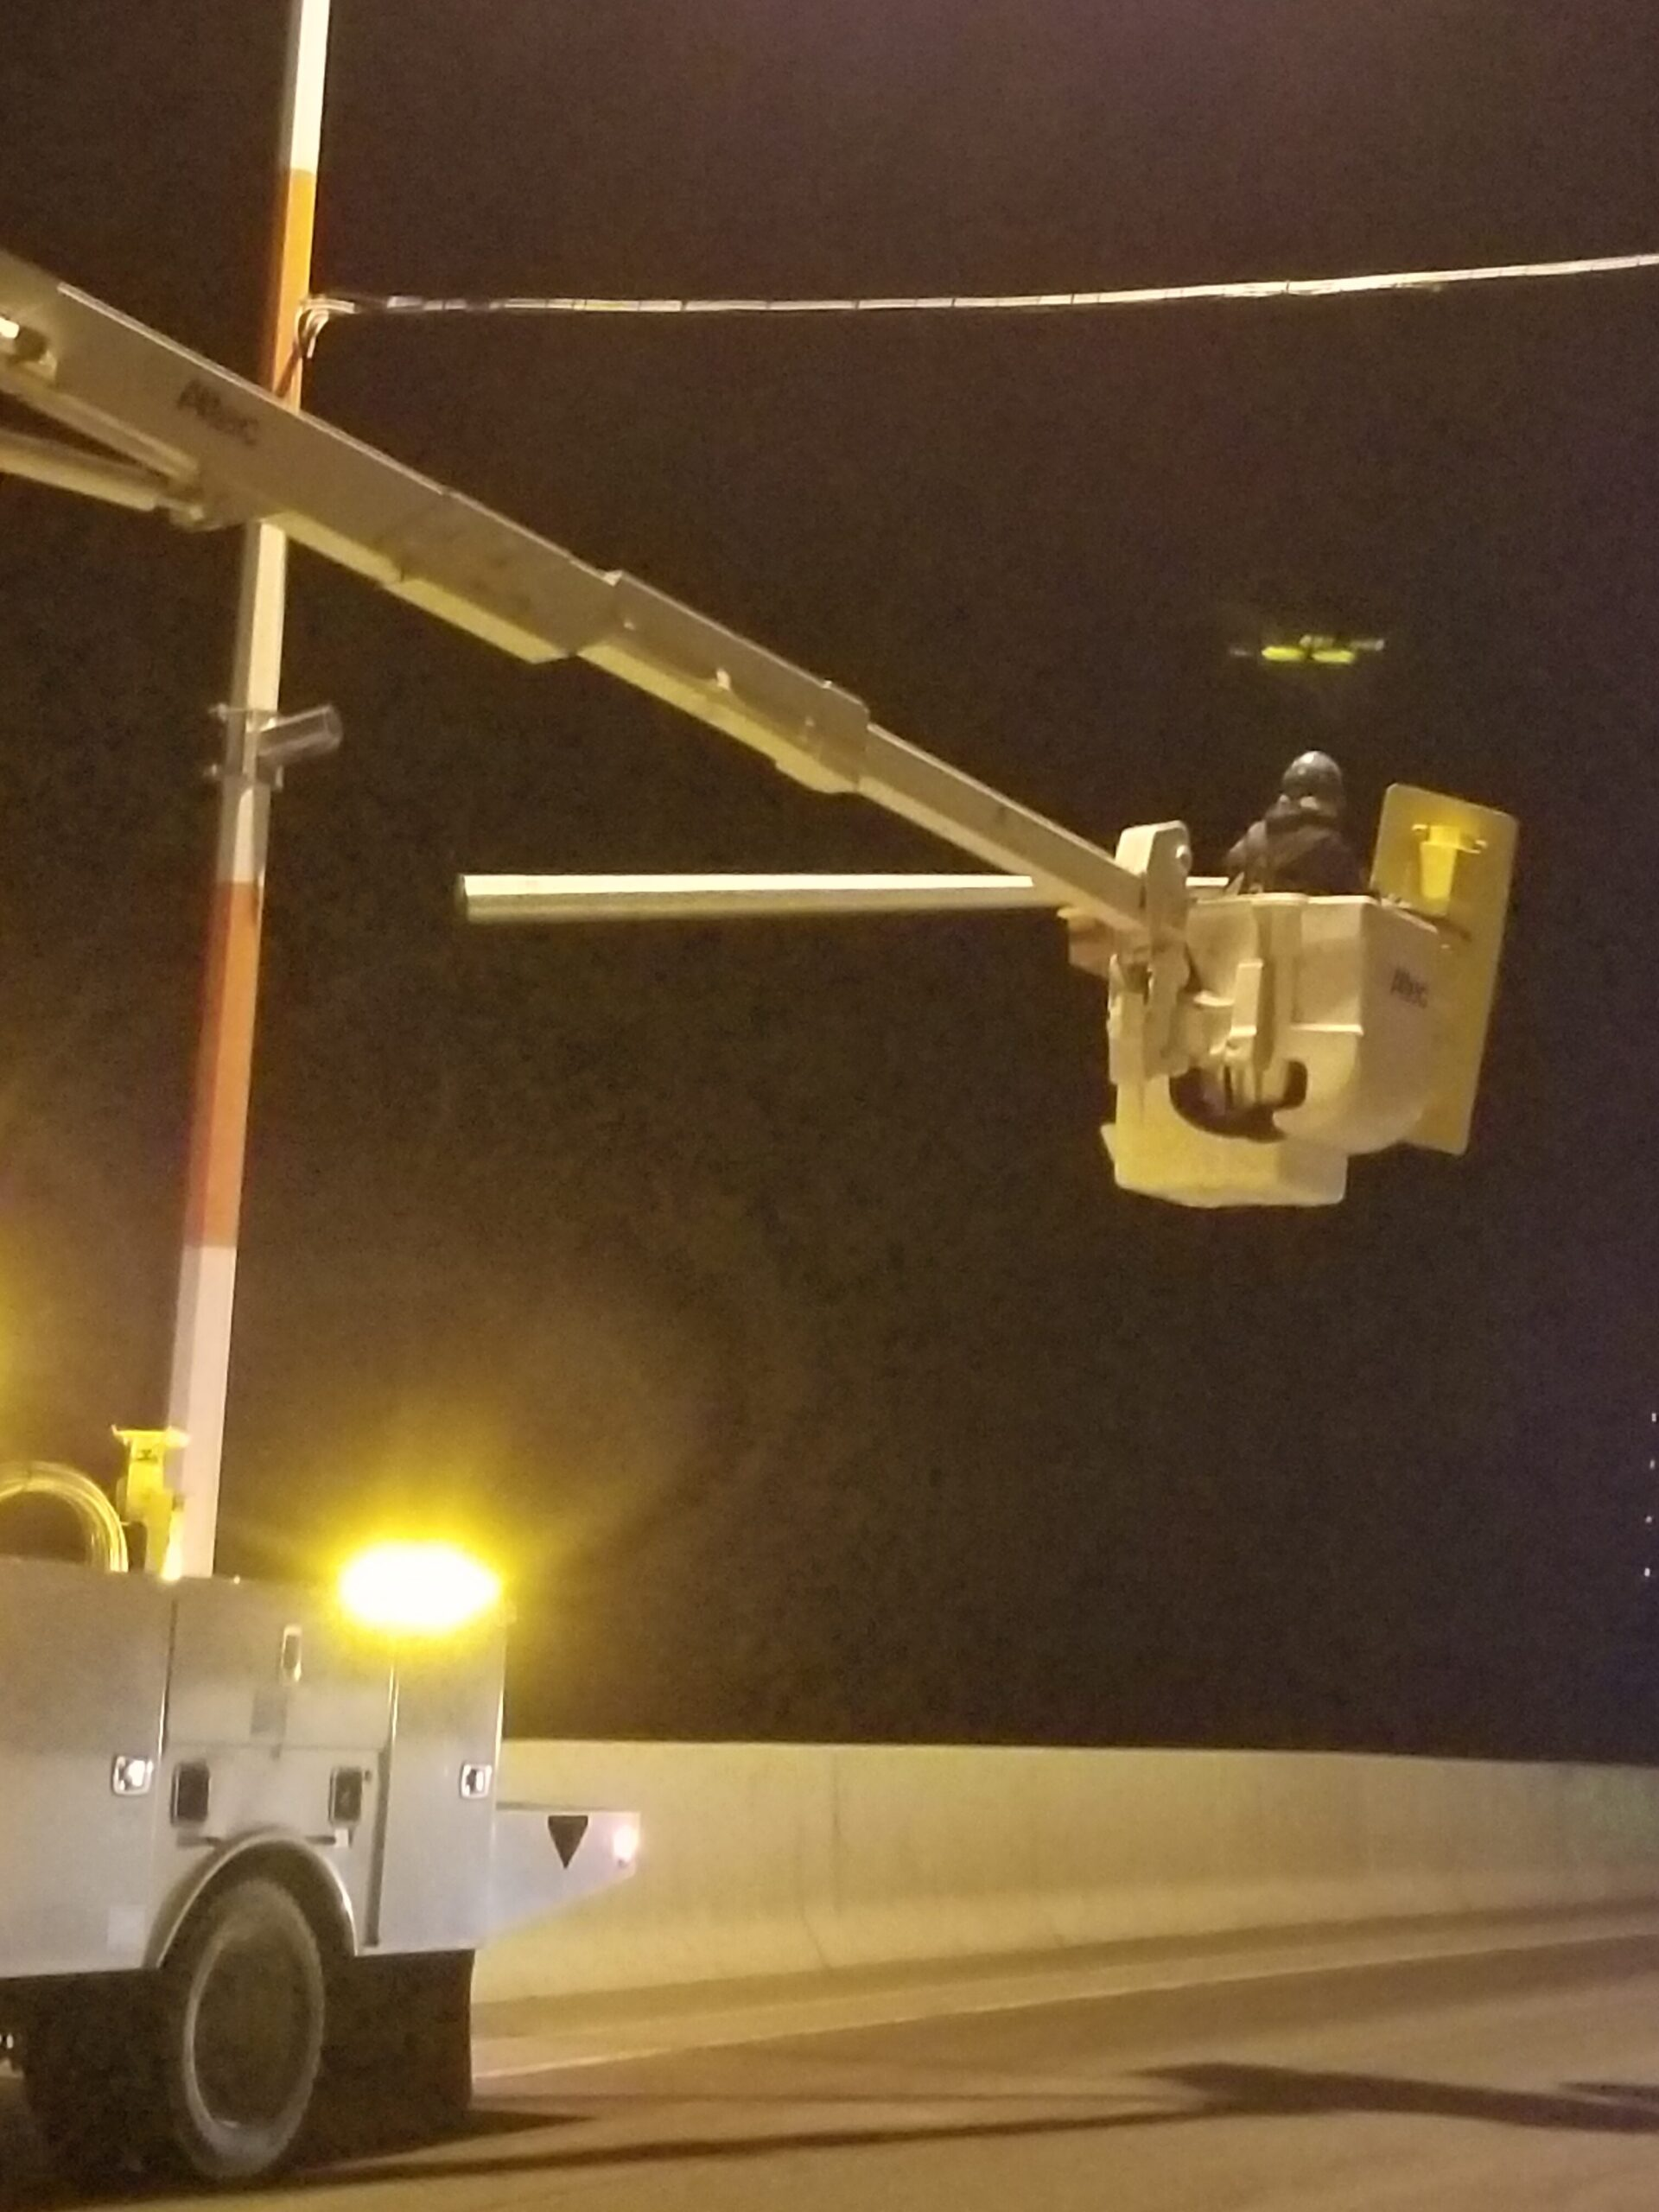 Lowering the removed traffic signal